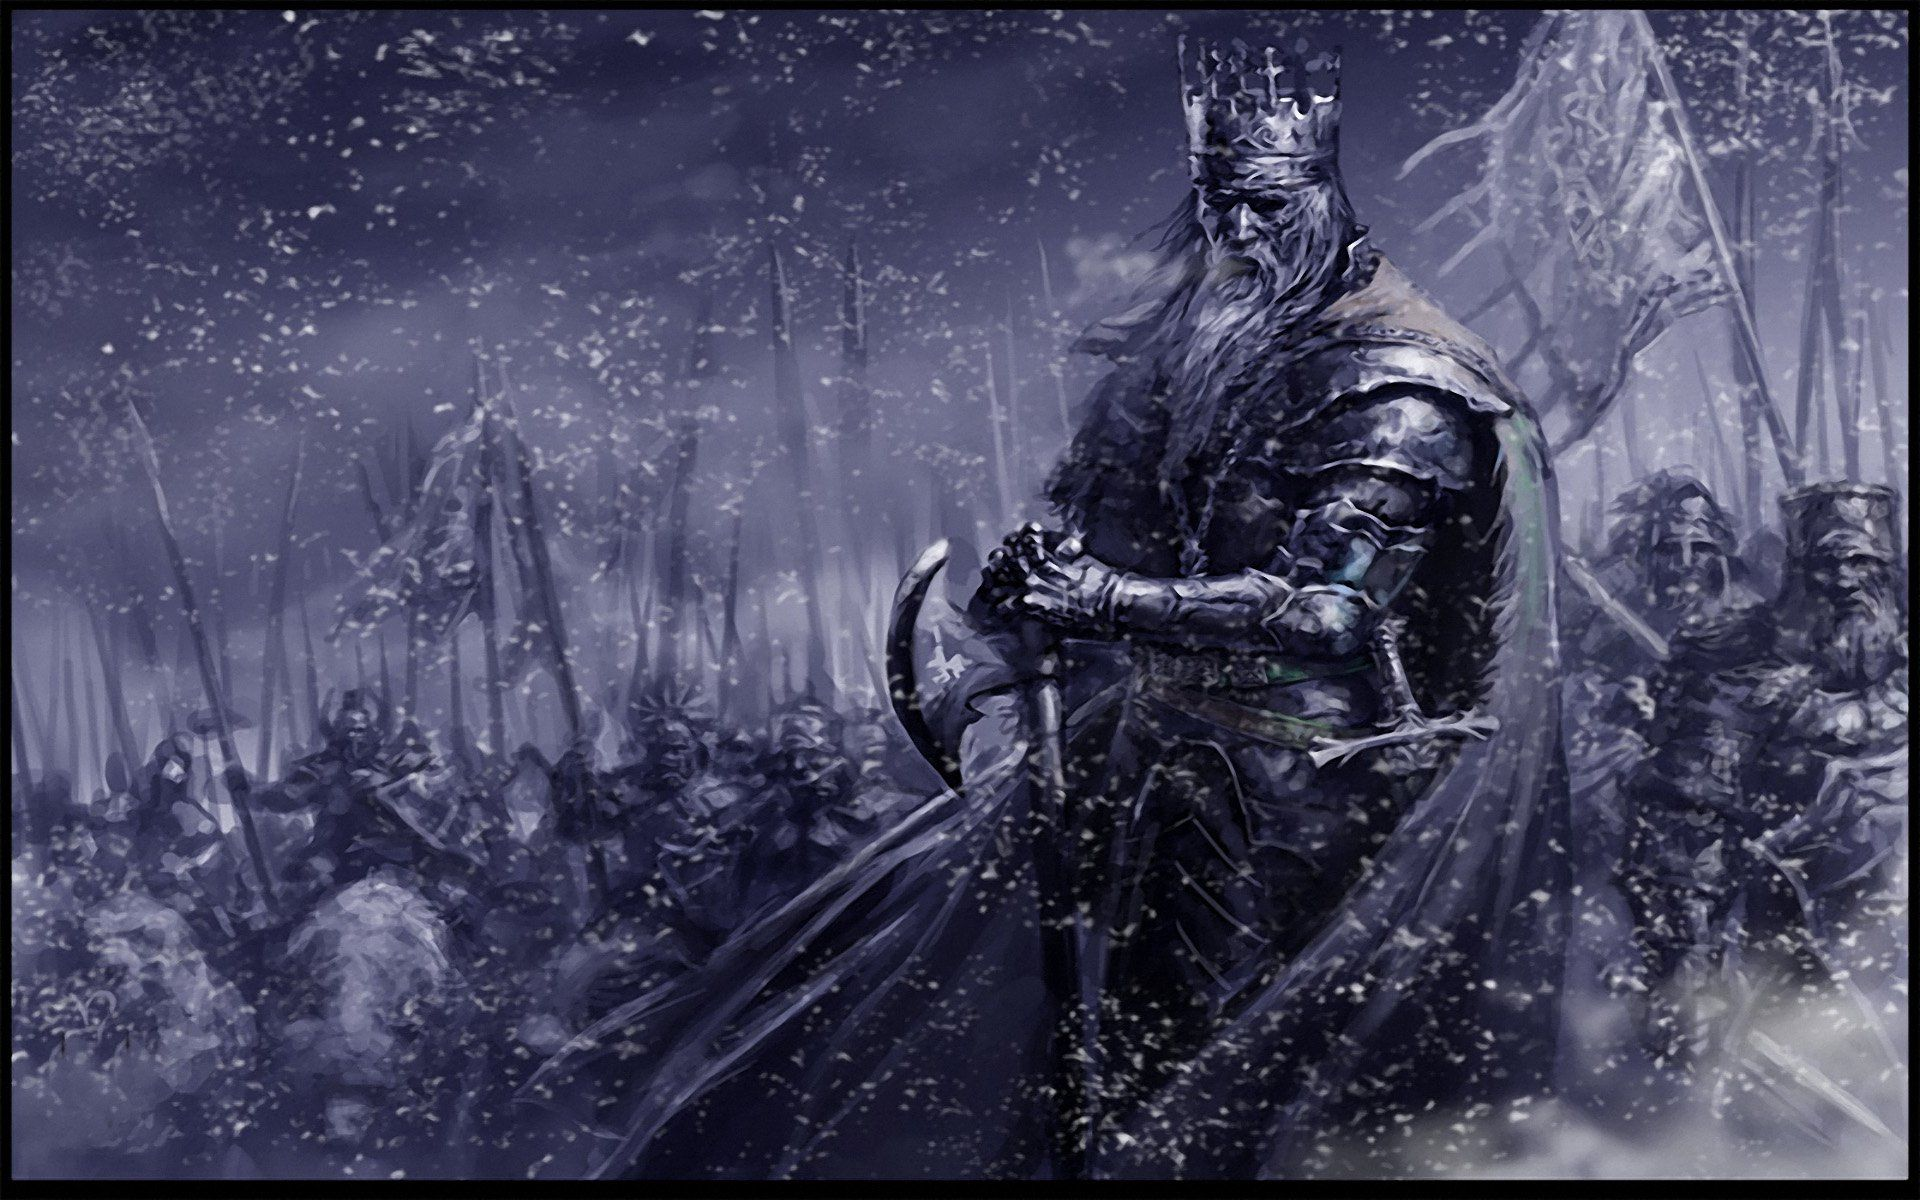 Warrior King Wallpapers Top Free Warrior King Backgrounds Wallpaperaccess